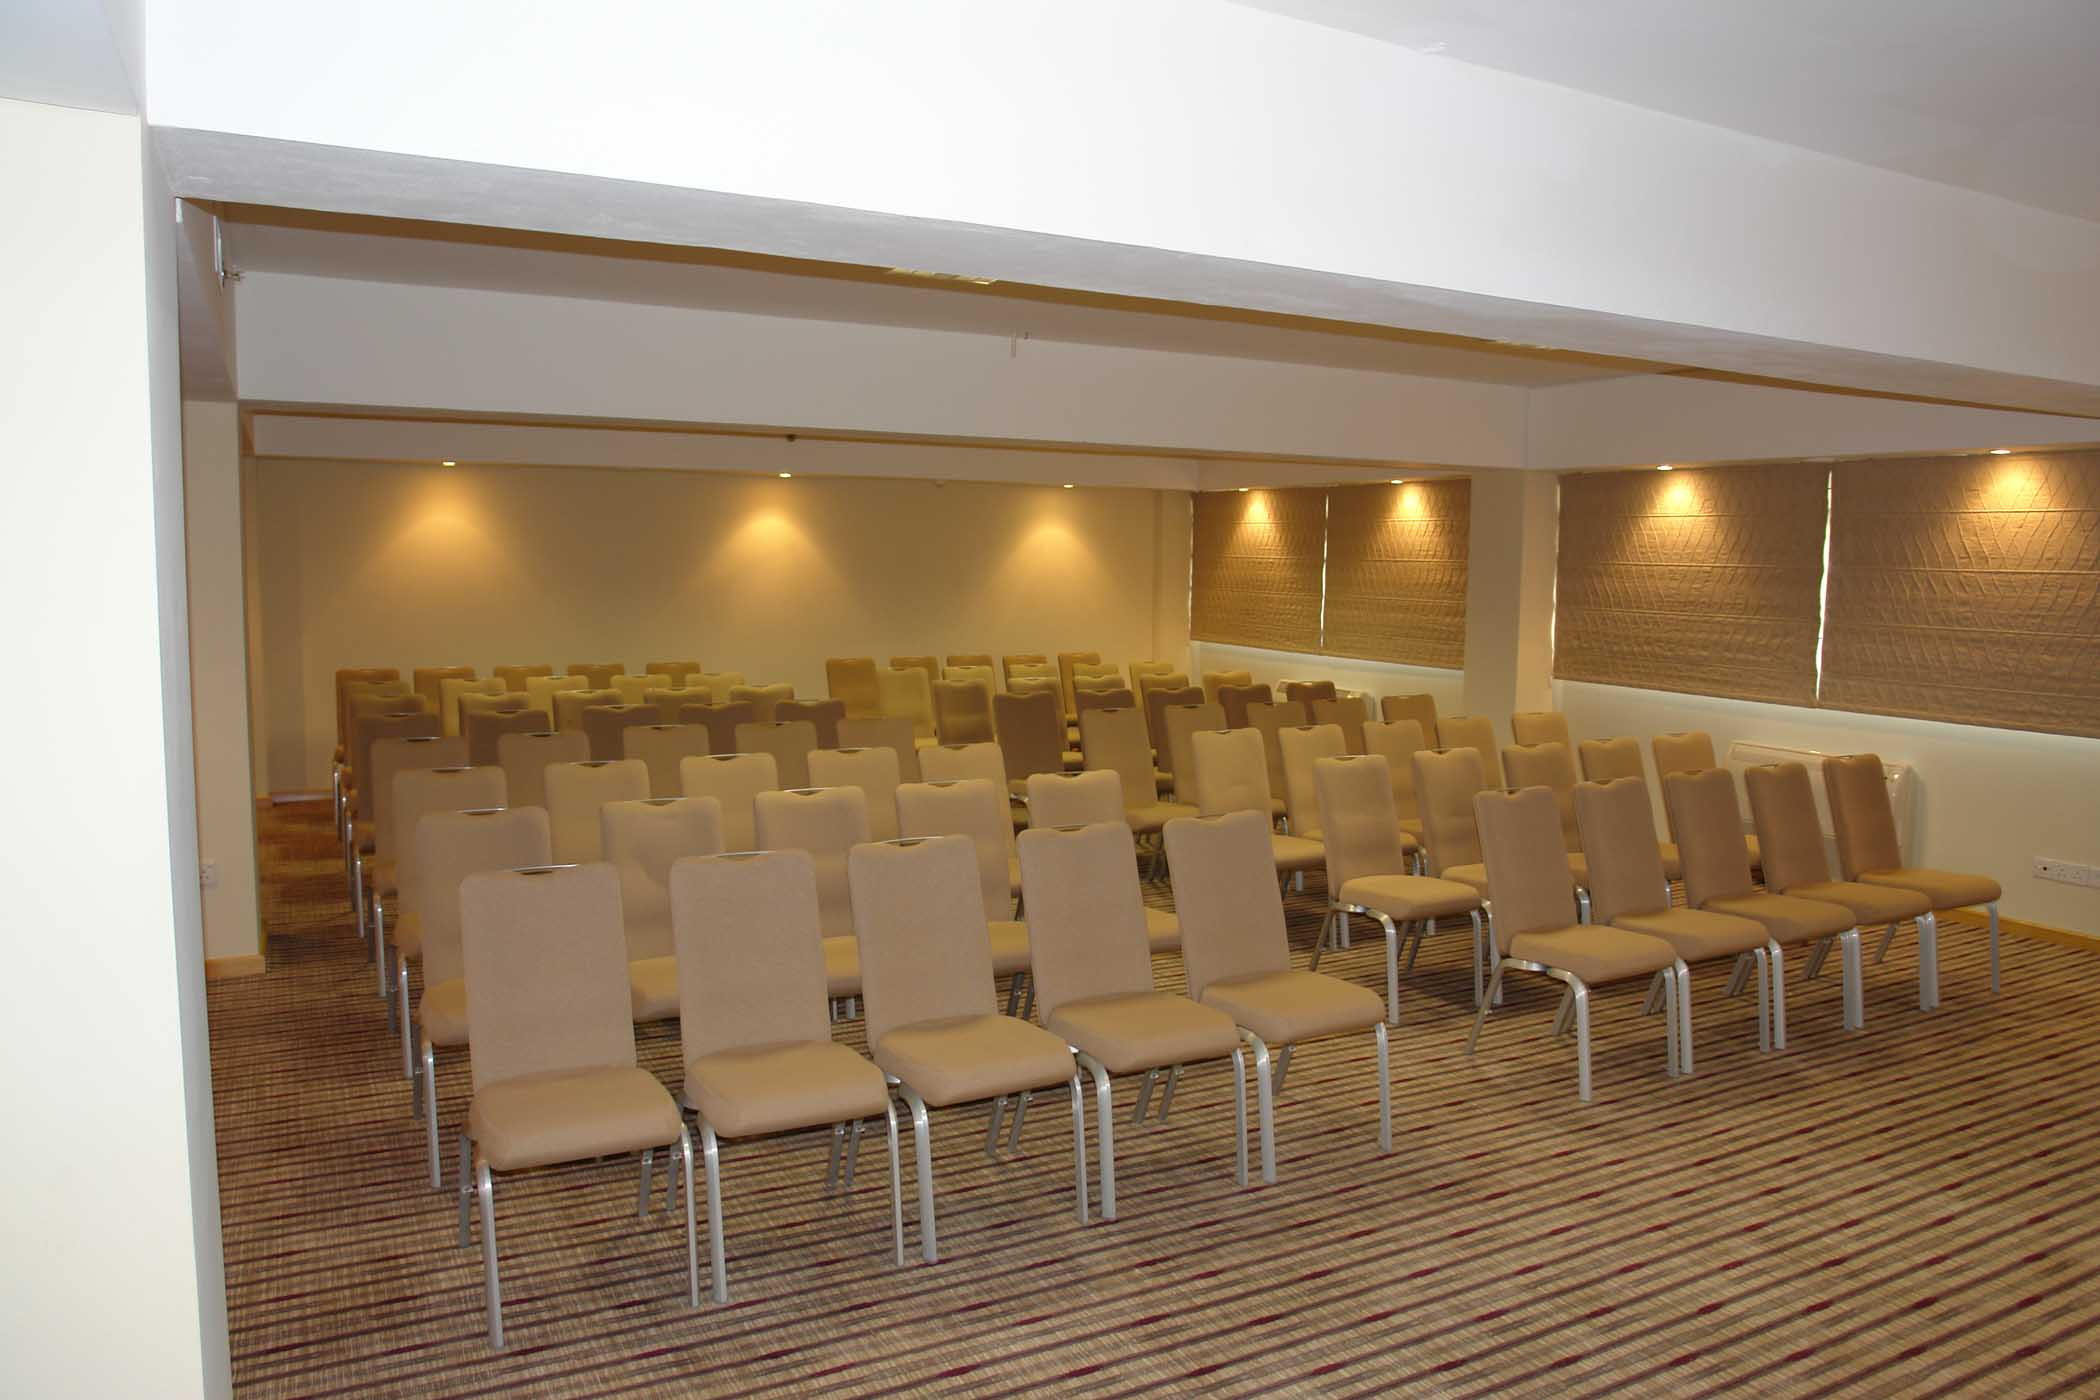 STR Atrium Conferences 300dpi 4